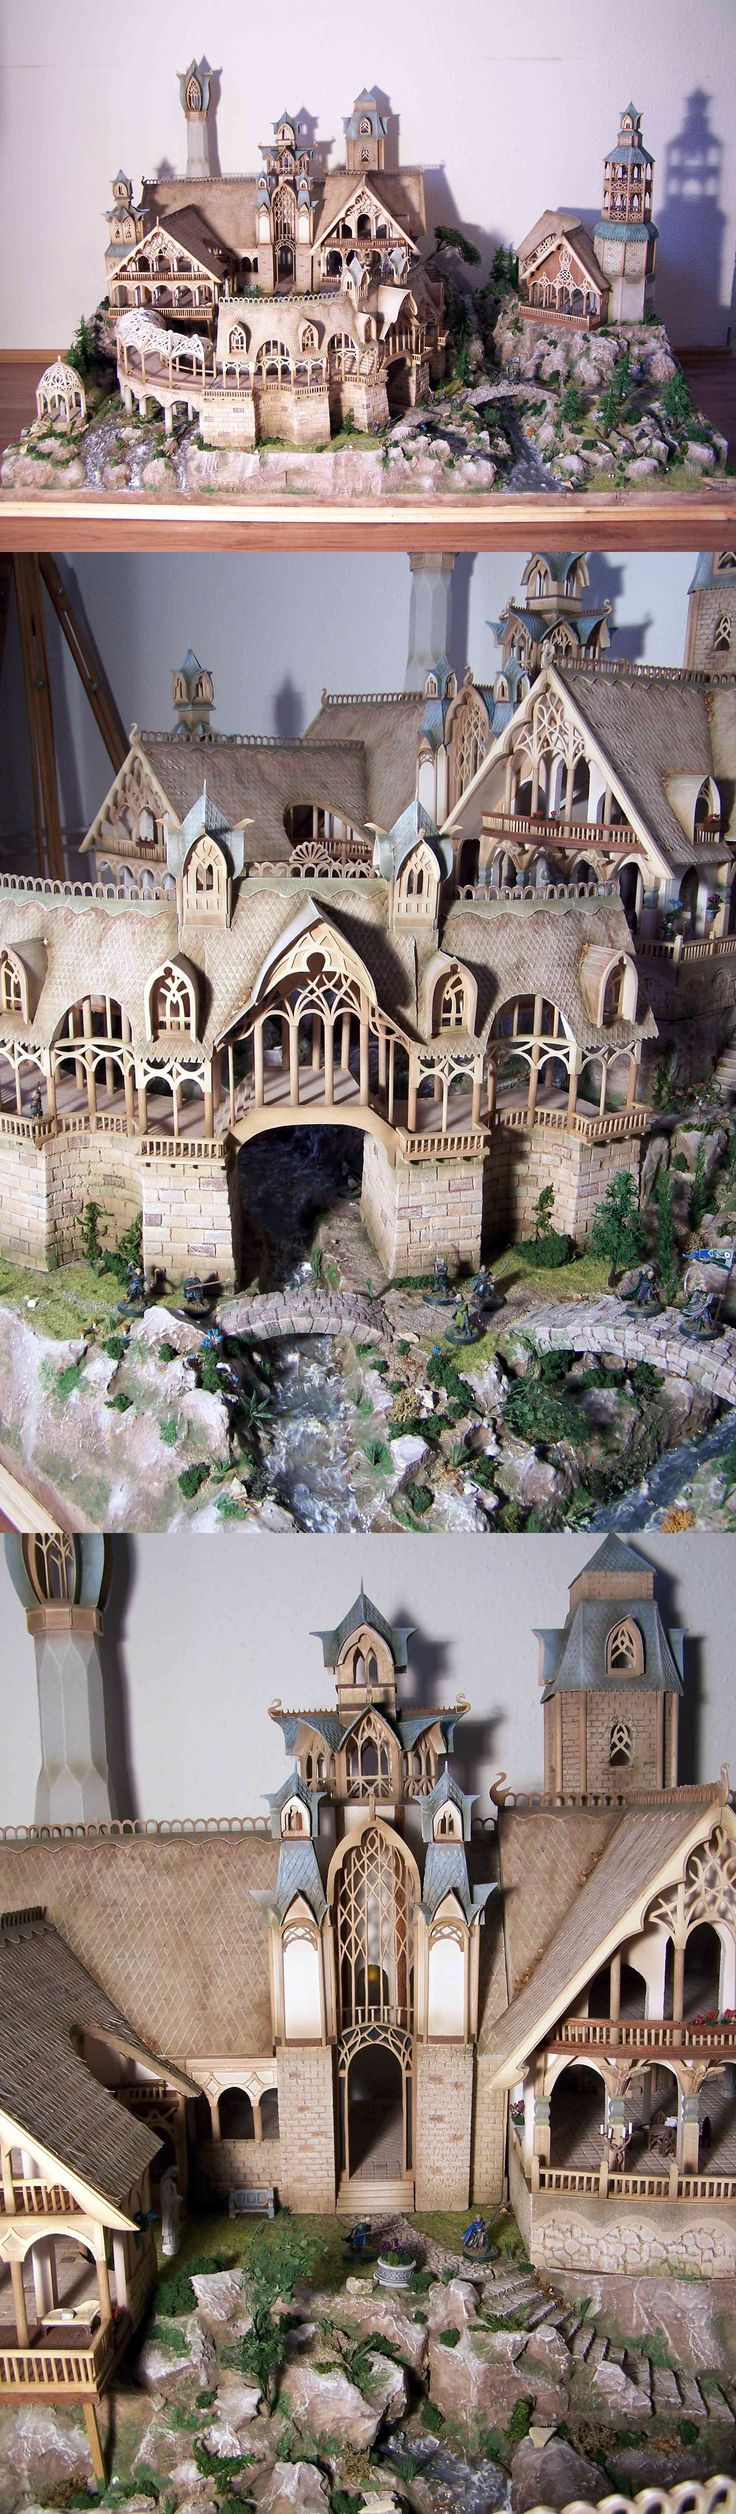 Speechless!!! Incredible....Rivendell. House of Elrond